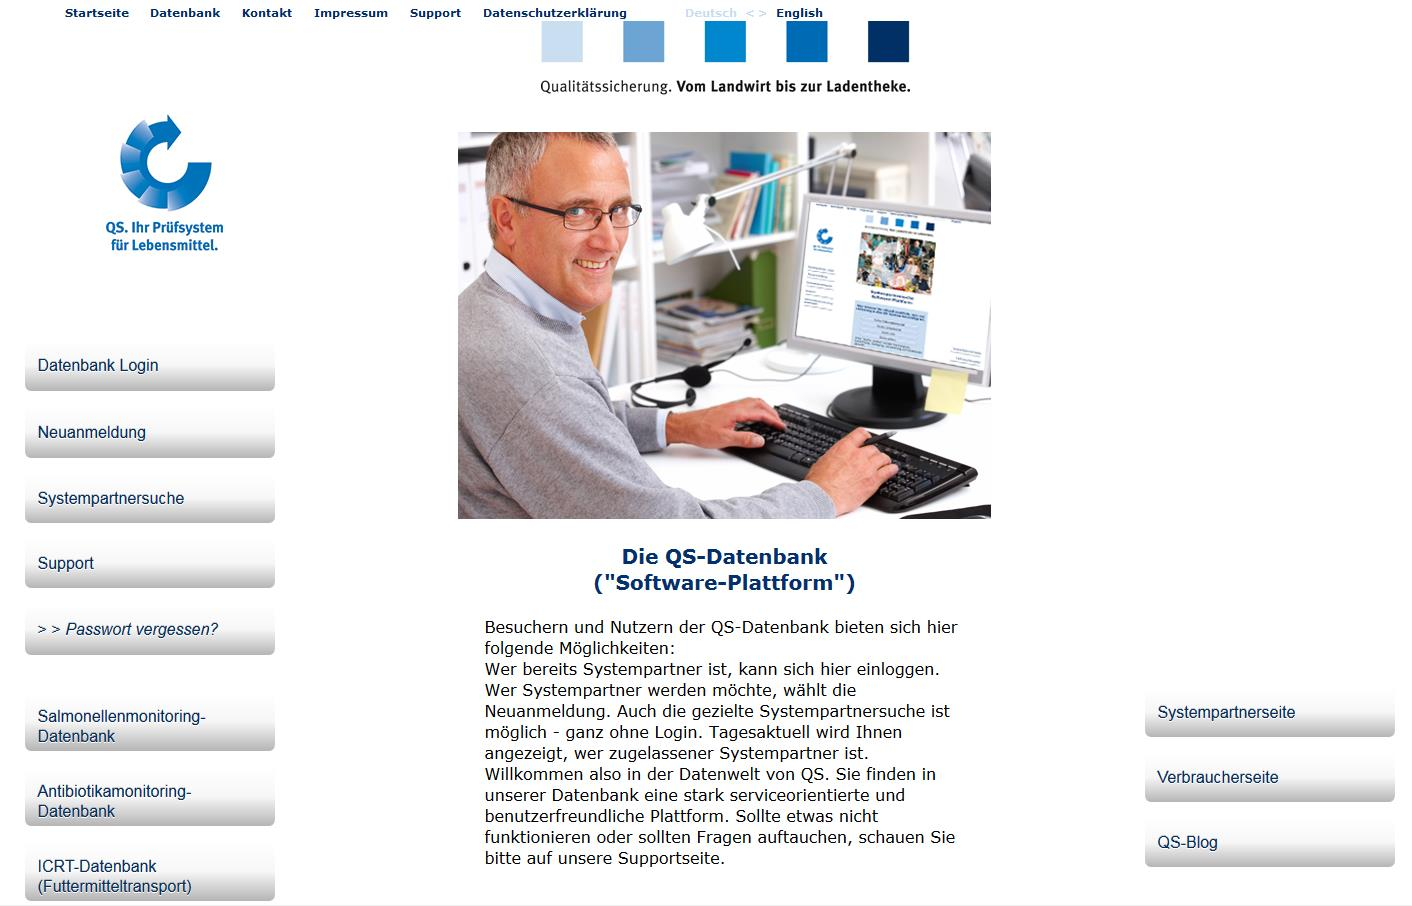 1 Login in die Software-Plattform http://www.qs-plattform.de/ Datenbank http://www.qsplattform.